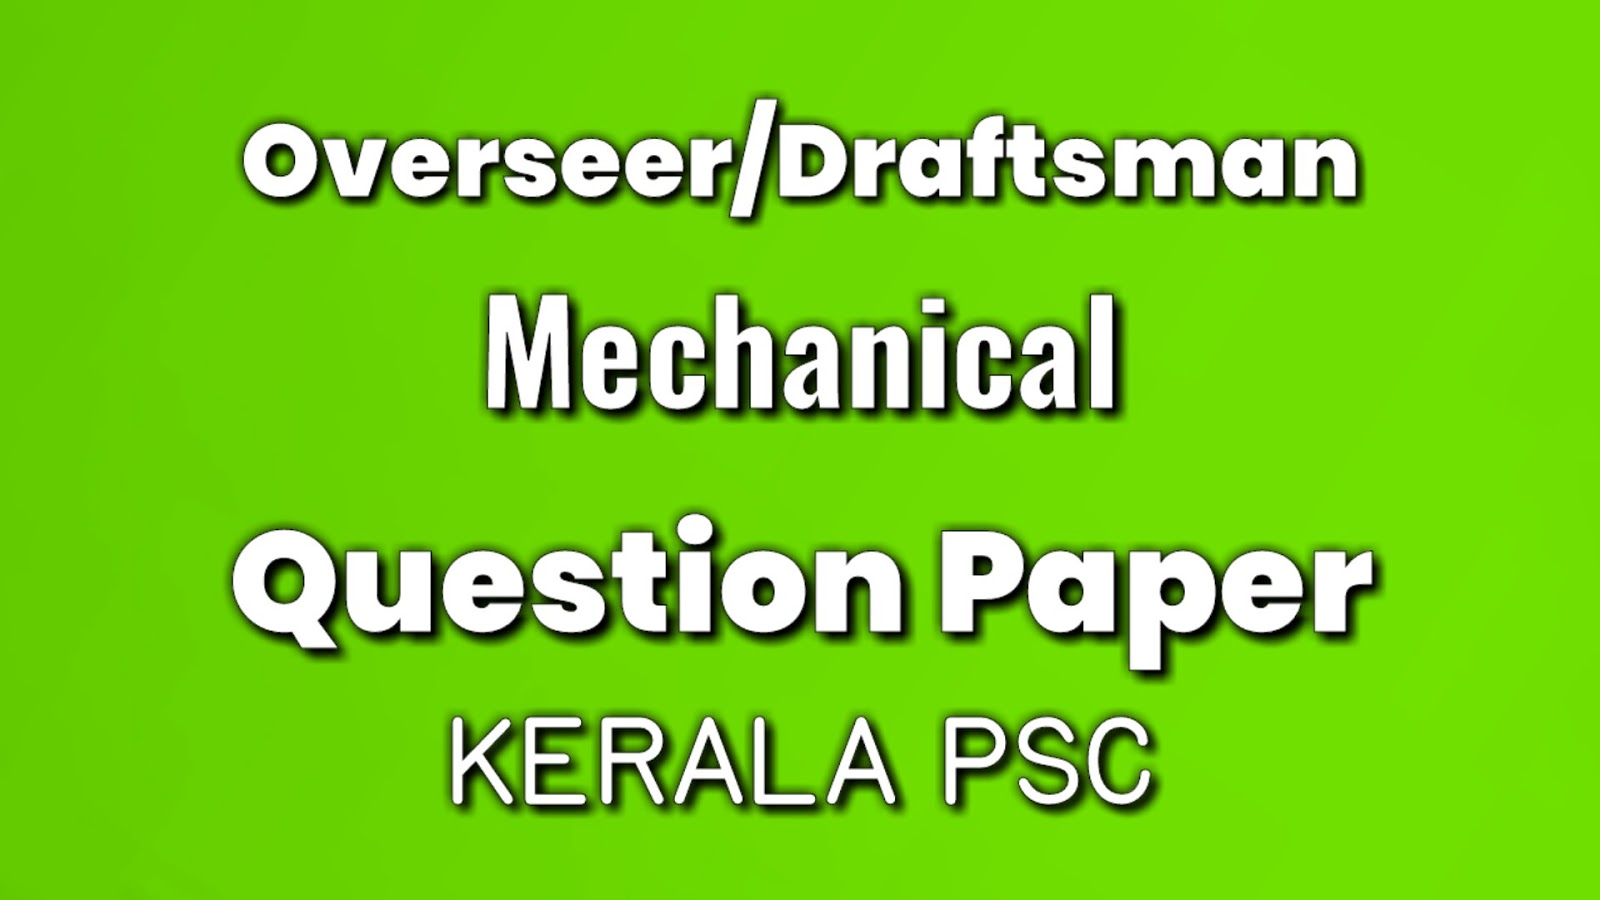 Kerala PSC Overseer / Draftsman ( Mechanical ) Grade 3 / Tracer Exam Previous Question Paper